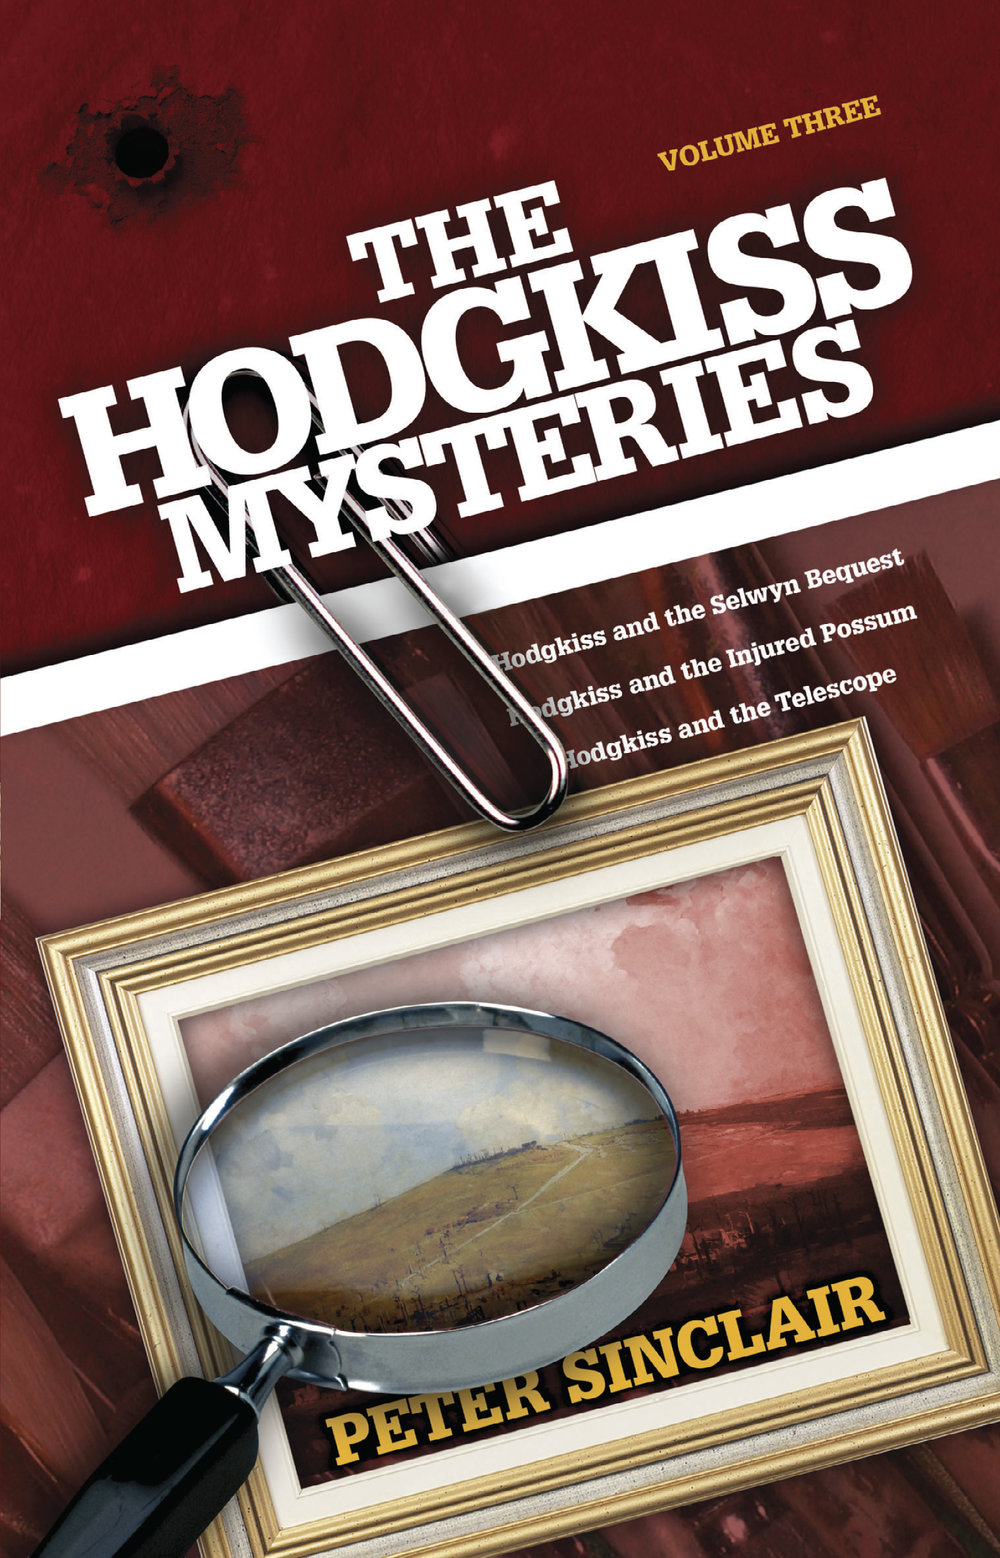 Hodgkiss Mysteries_The__cover_VOL III_PRINT.jpg